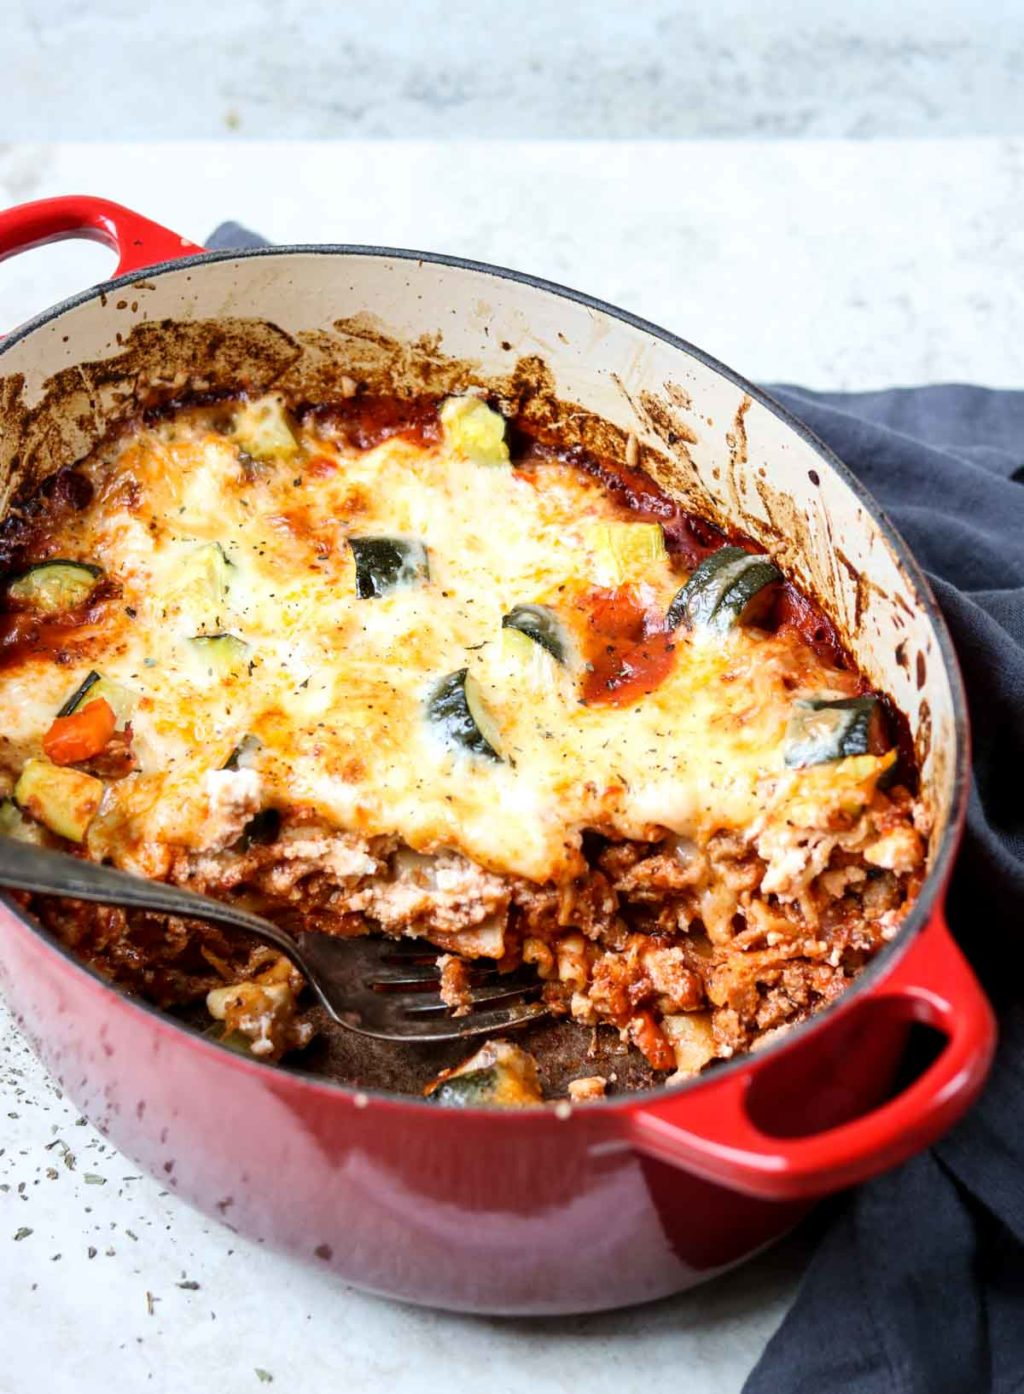 Dutch Oven Lasagna in a red Le Creuset with a scoop taken out